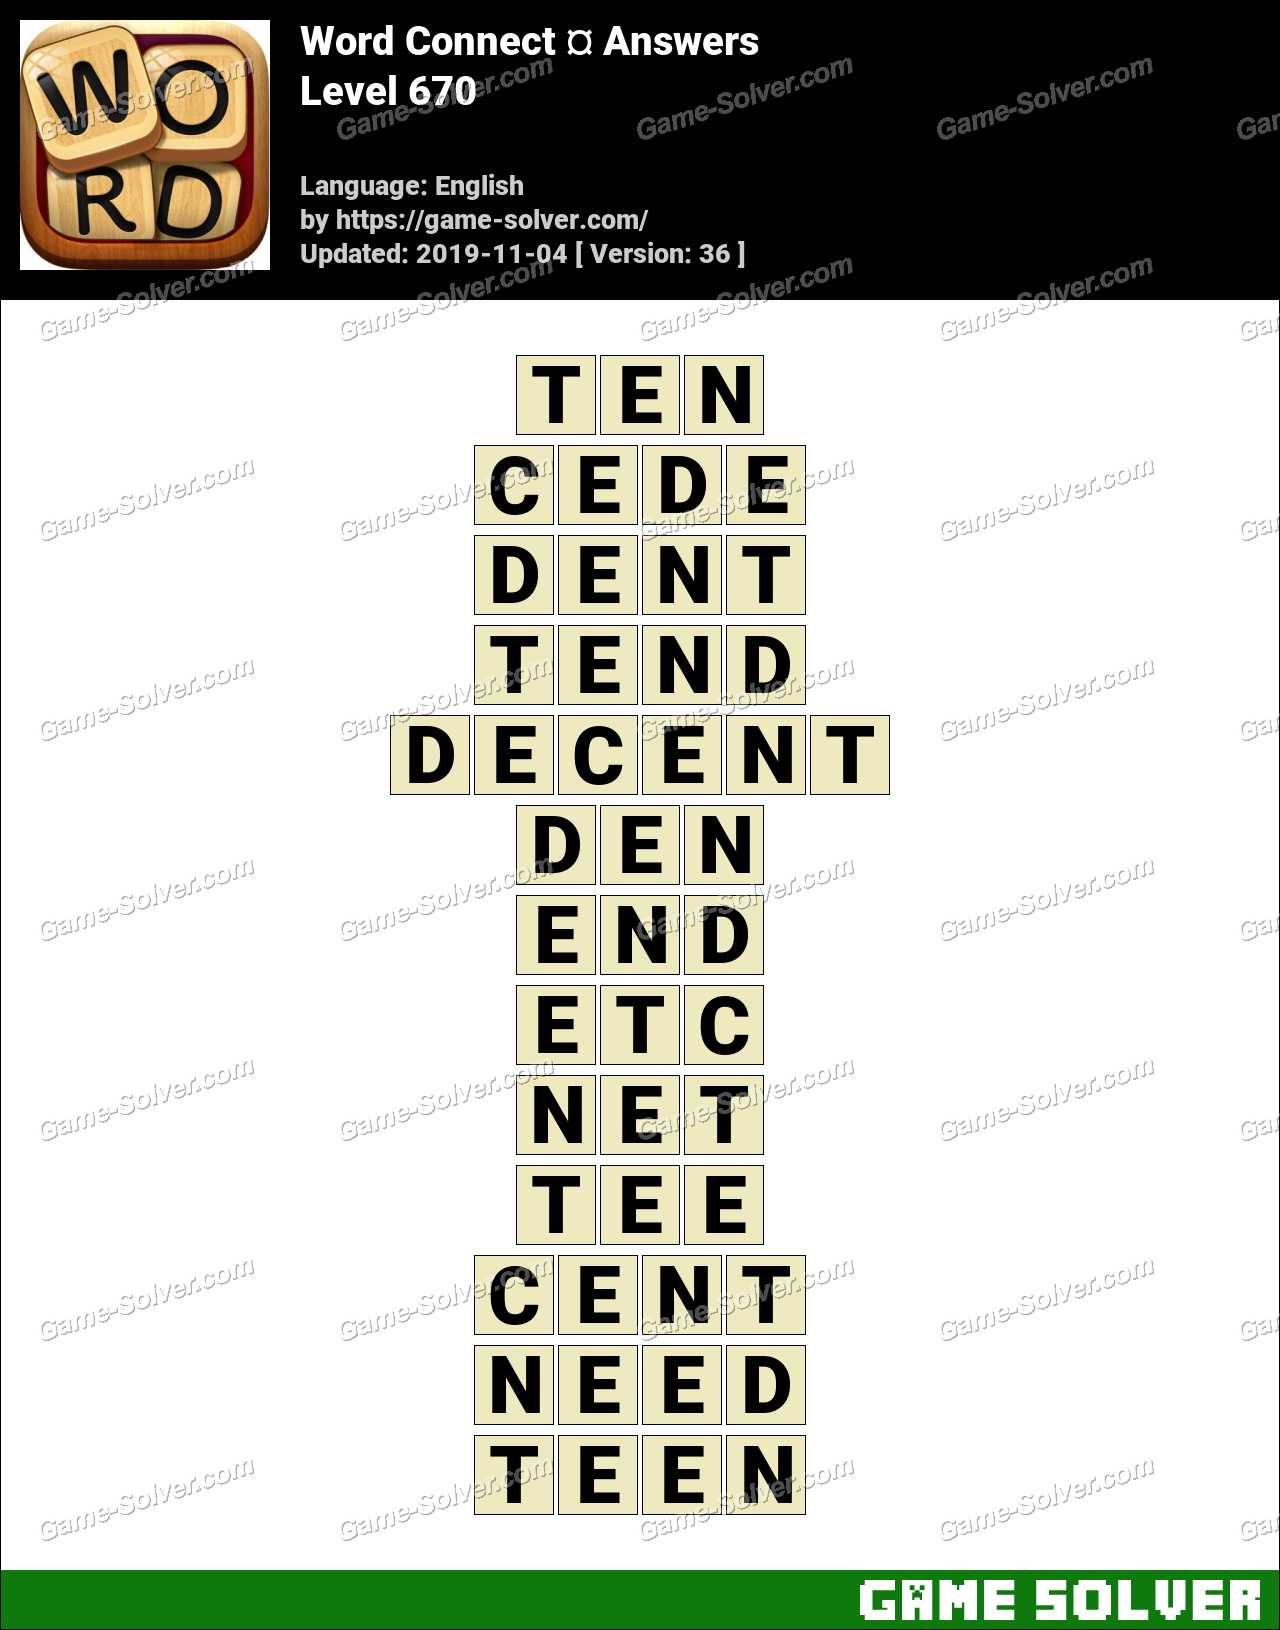 Word Connect Level 670 Answers